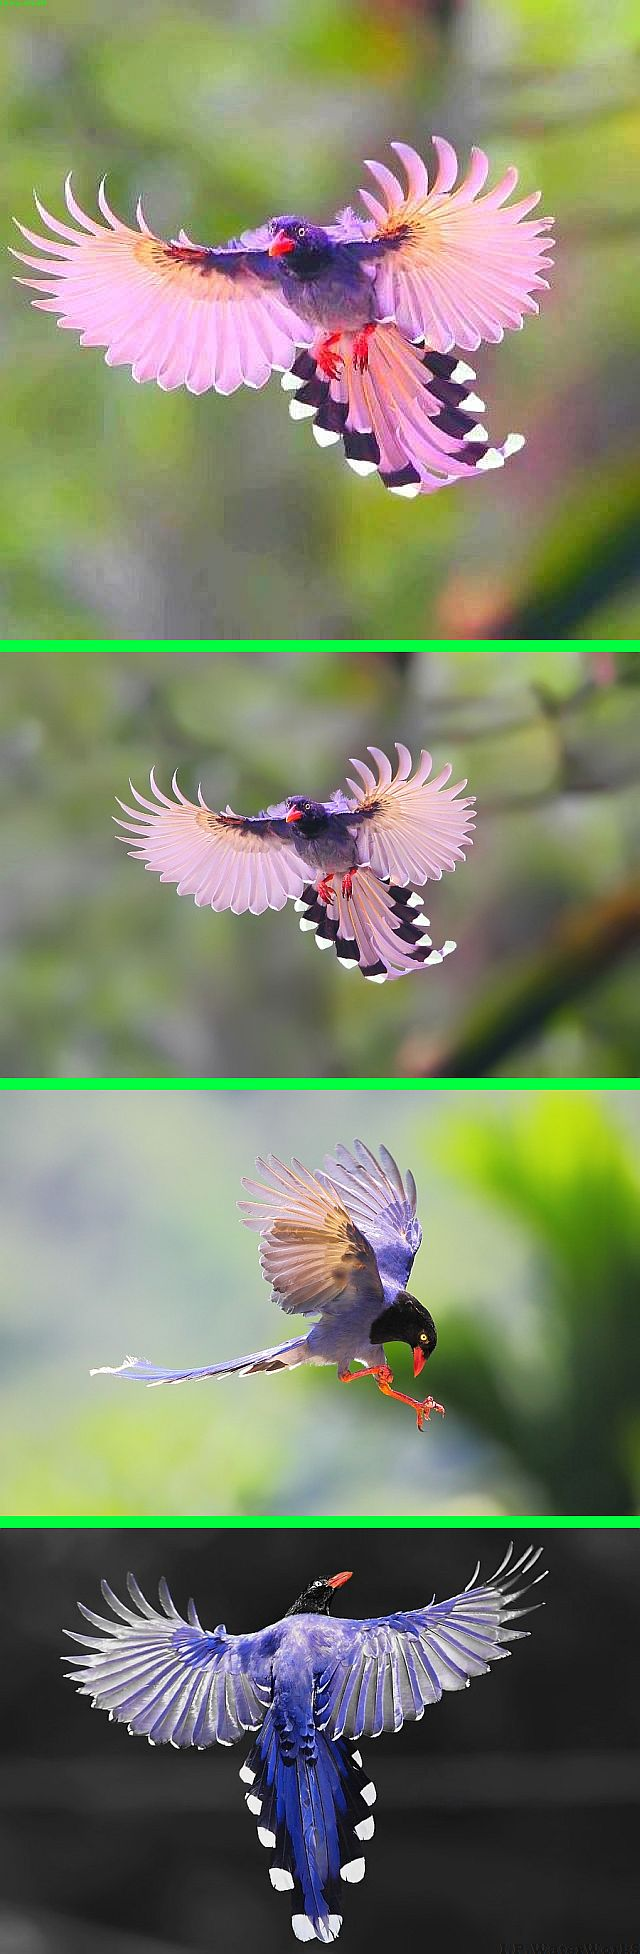 "Fake - The top altered image is pinned as ""Pink Bird of Paradise"" - The rest are real by Dajan Chiou on 500PX and depict the  Taiwan Blue Magpie (Urocissa caerulea), also called the Taiwan Magpie or Formosan Blue Magpie (Chinese: 臺灣藍鵲; pinyin: Táiwān lán què) or the ""long-tailed mountain lady"" (Chinese: 長尾山娘; pinyin: Chángwěi shānniáng; Taiwanese: Tn̂g-boé soaⁿ-niû), is a member of the Crow family. It is an endemic species living in the mountains of Taiwan at elevations of 300 to 1200m."